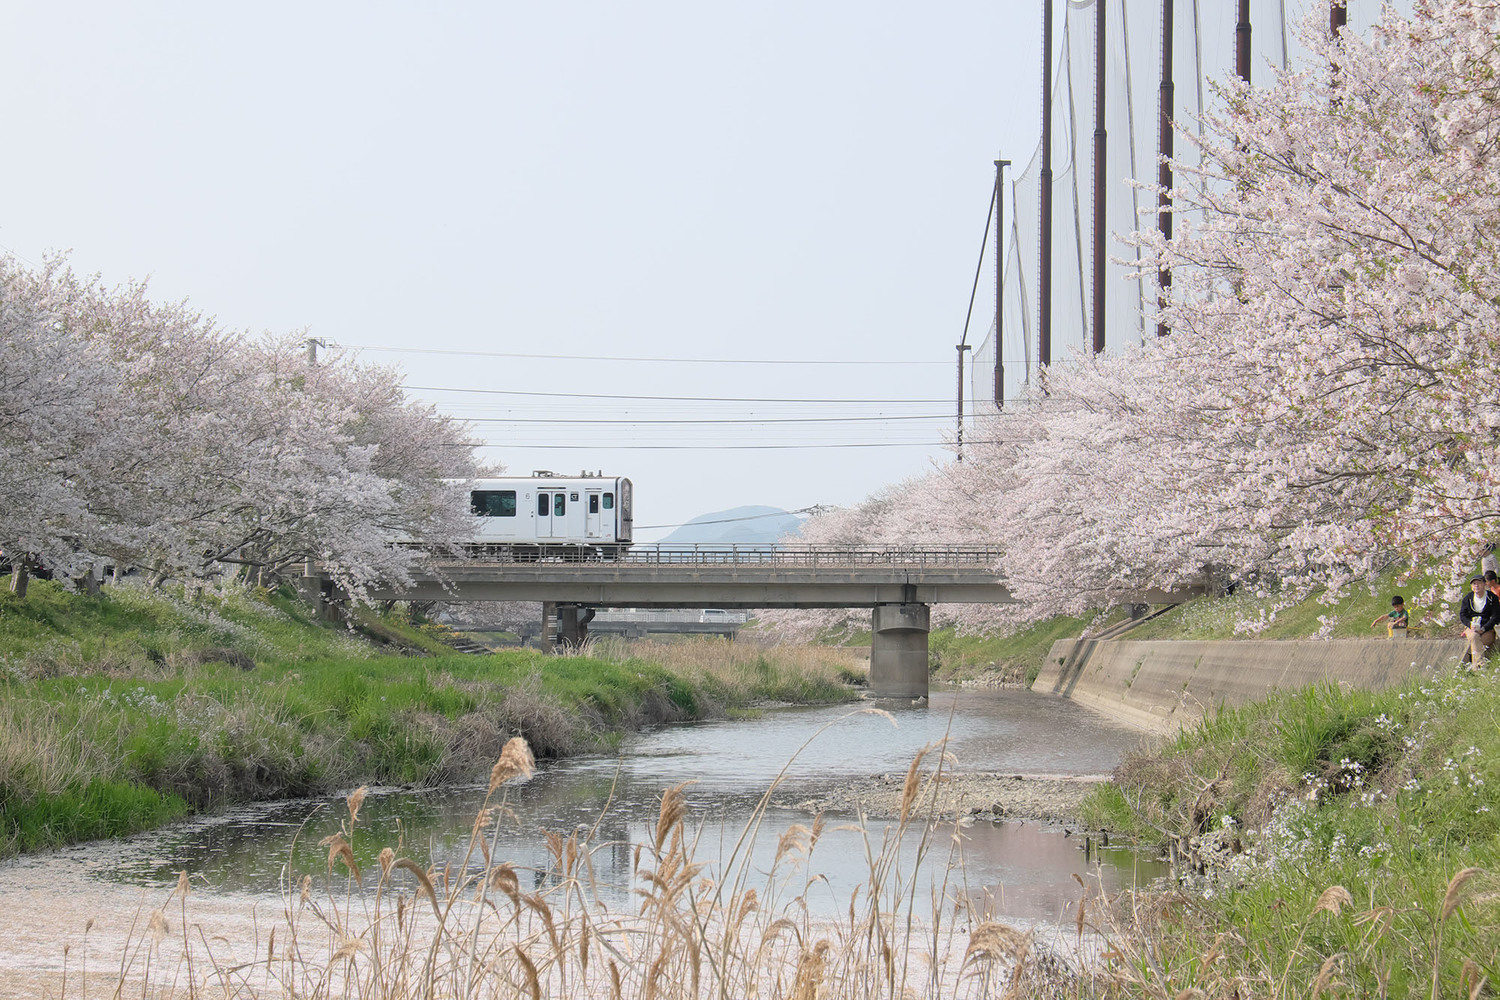 Plant, Flower, Railway, Transportation, Person, Cherry Blossom, Vehicle, Train, Grass, Locomotive